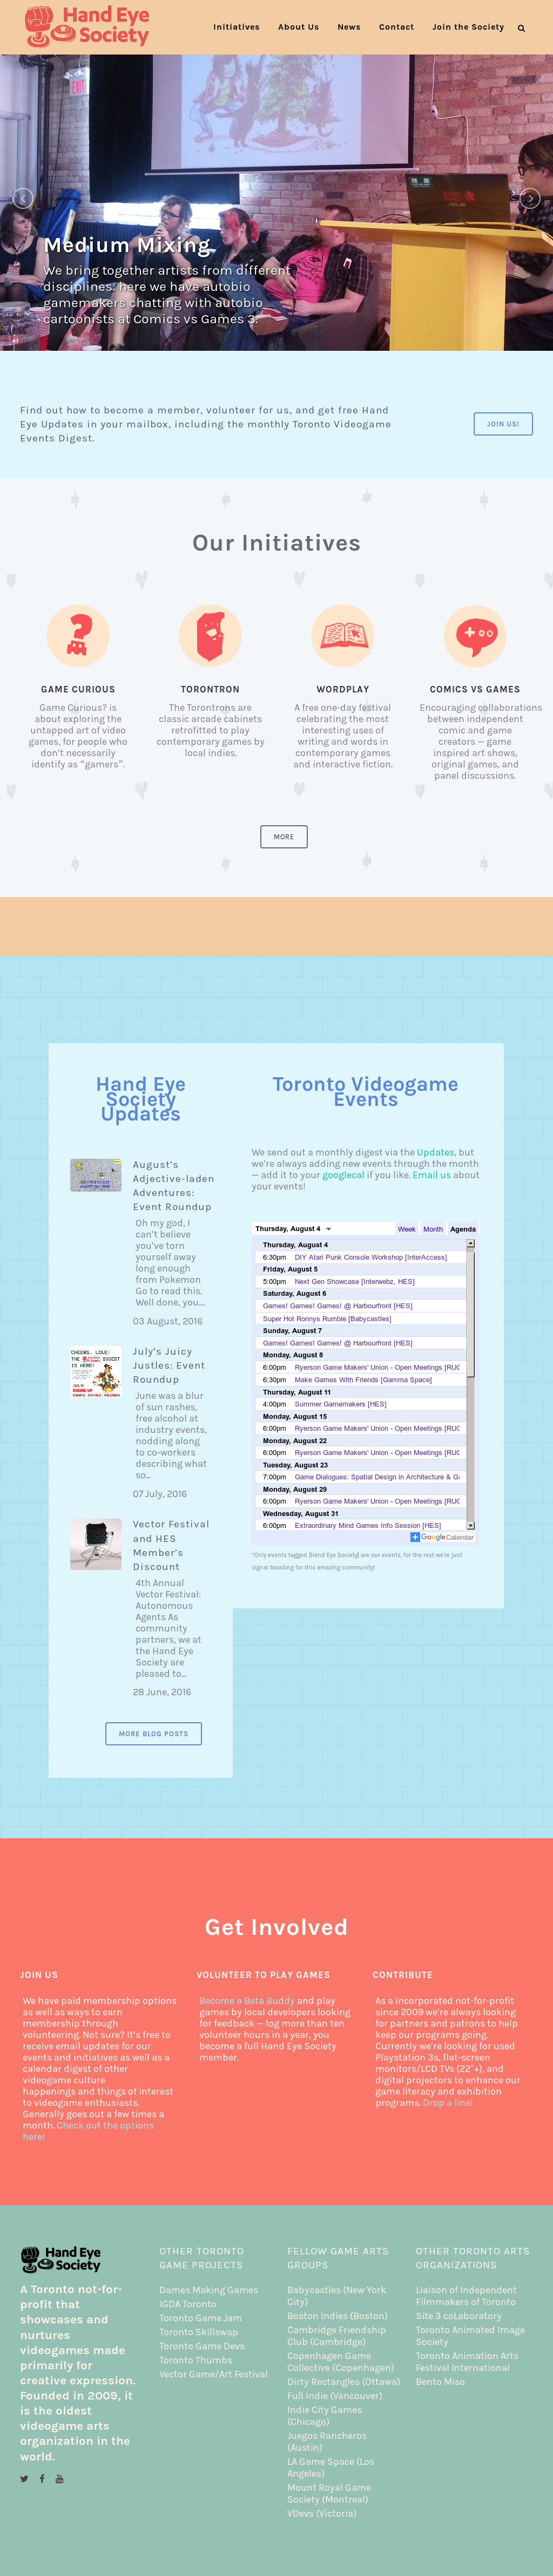 Igda Toronto Competitors, Revenue and Employees - Owler Company Profile